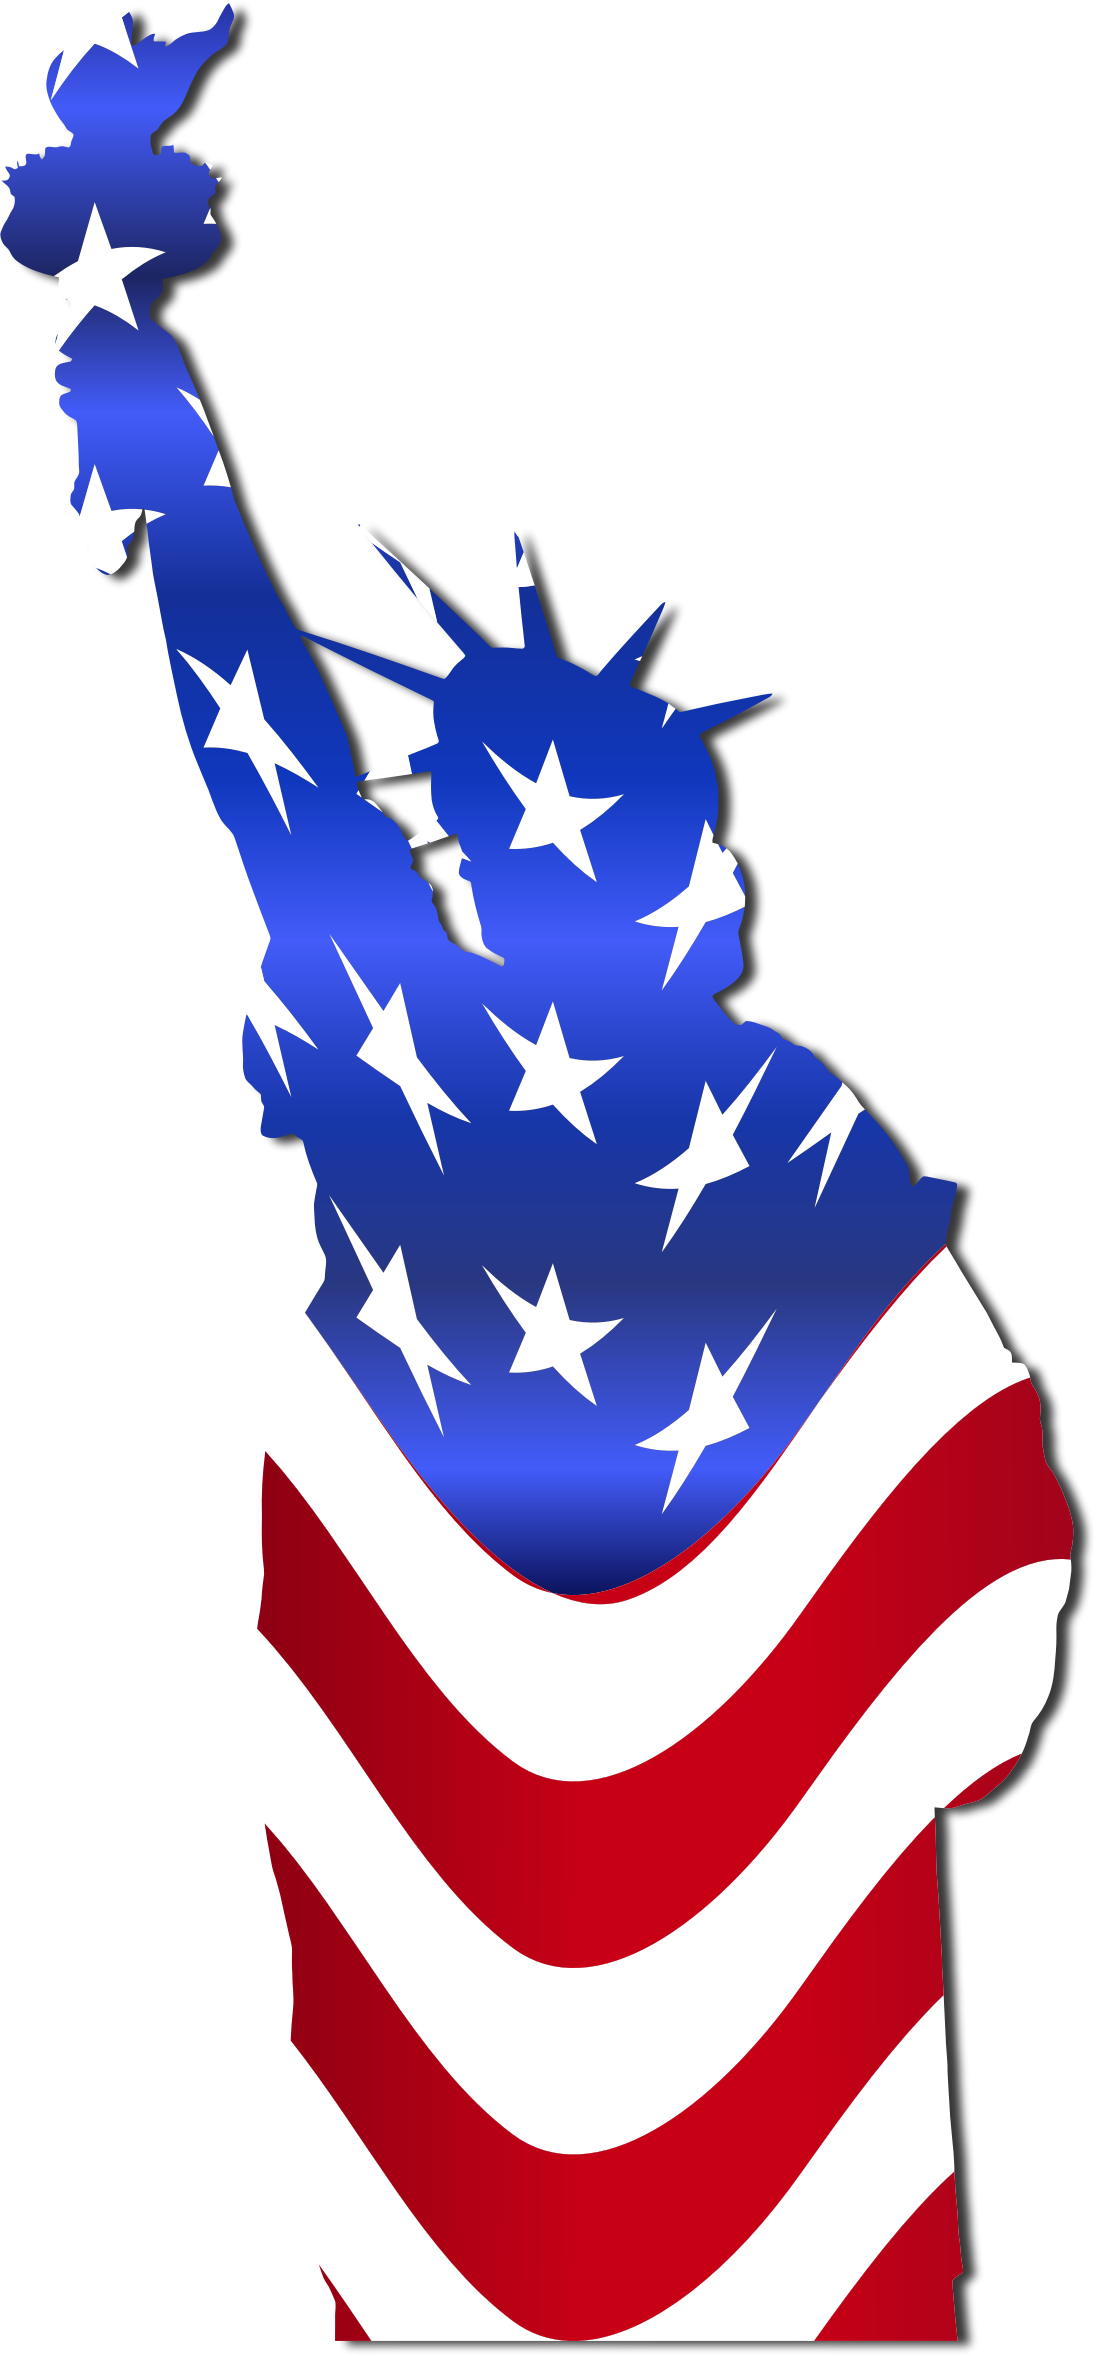 1096x2356 Statue Of Liberty Clipart Transparent